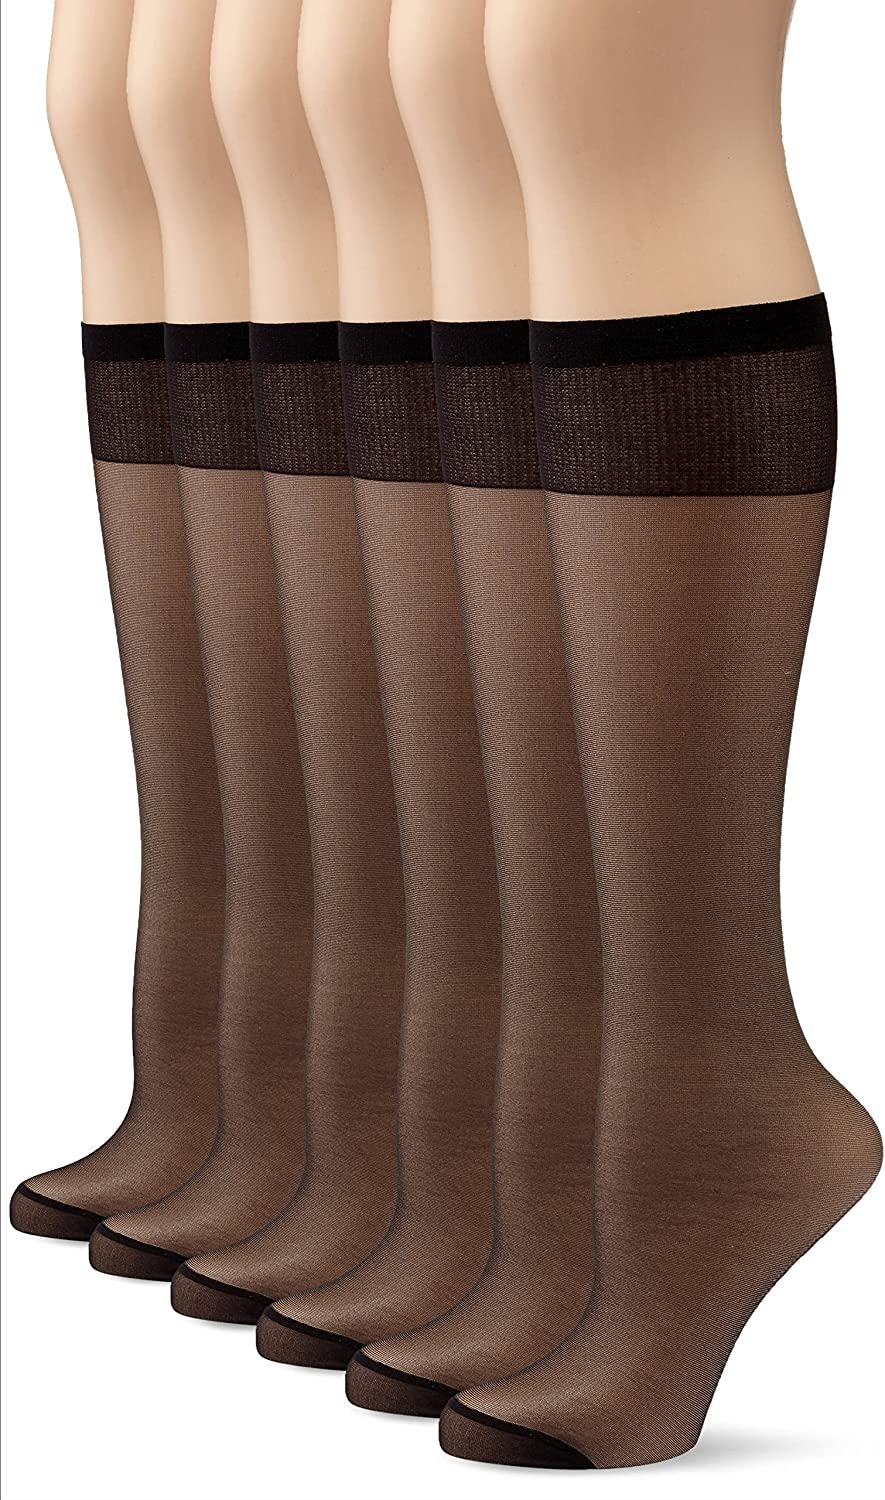 MyWay Womens Full-Fashioned Knee-High Socks 15 DEN Pack of 6